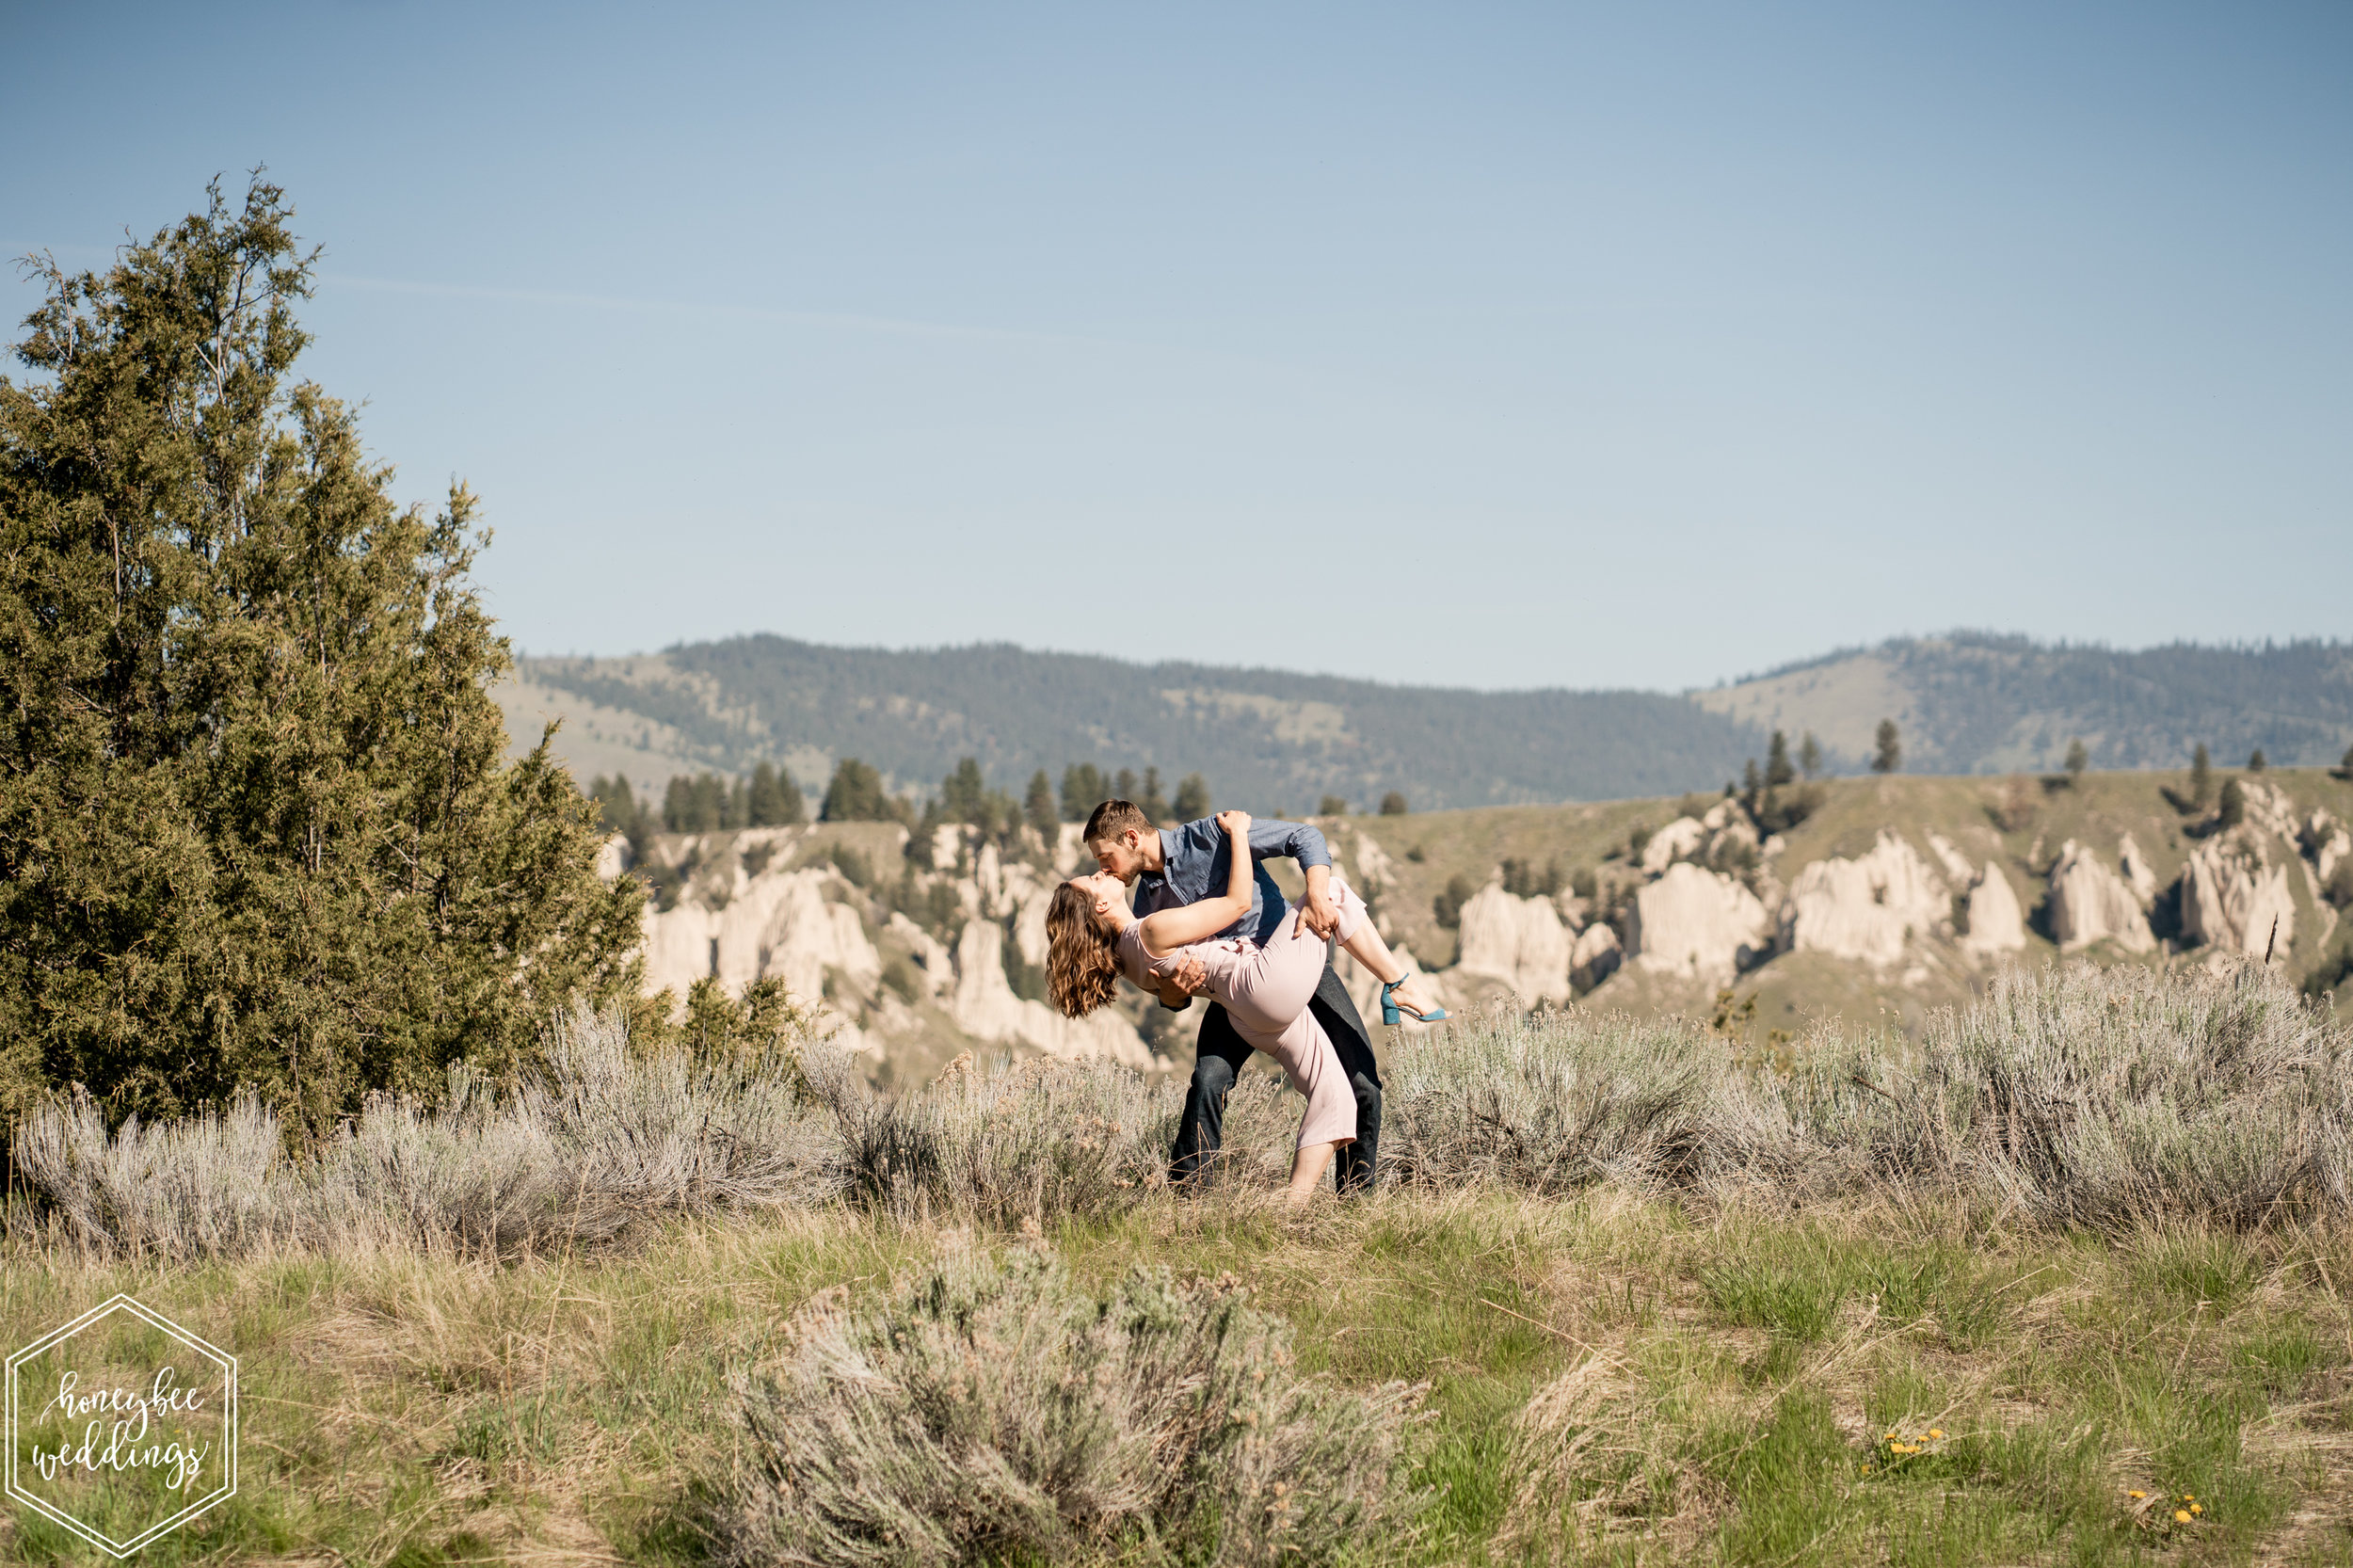 179Montana Wedding Photographer_Polson Engagement Session_Carrie & Matt_Honeybee Weddings_May 11, 2019-360.jpg